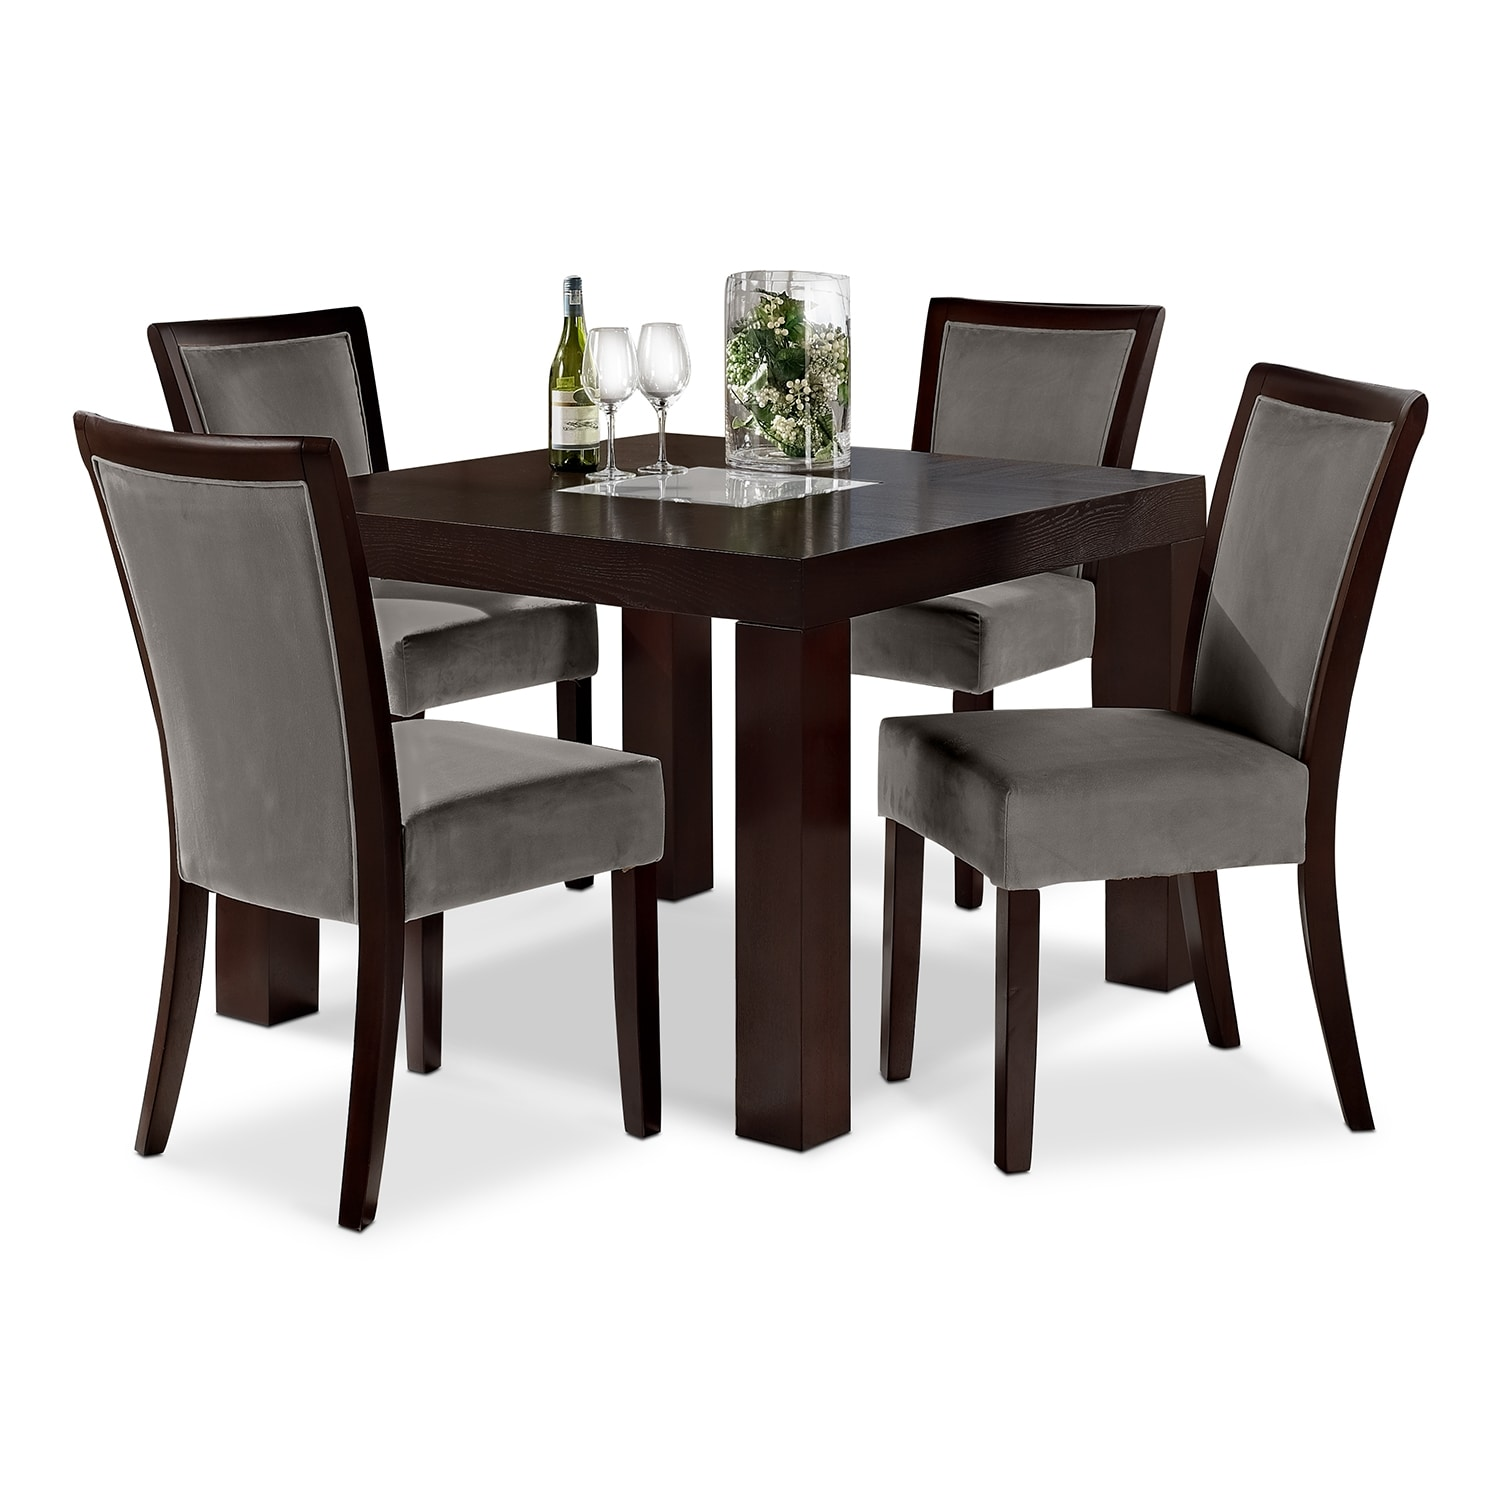 tango gray dining room 5 pc dinette 42 table value